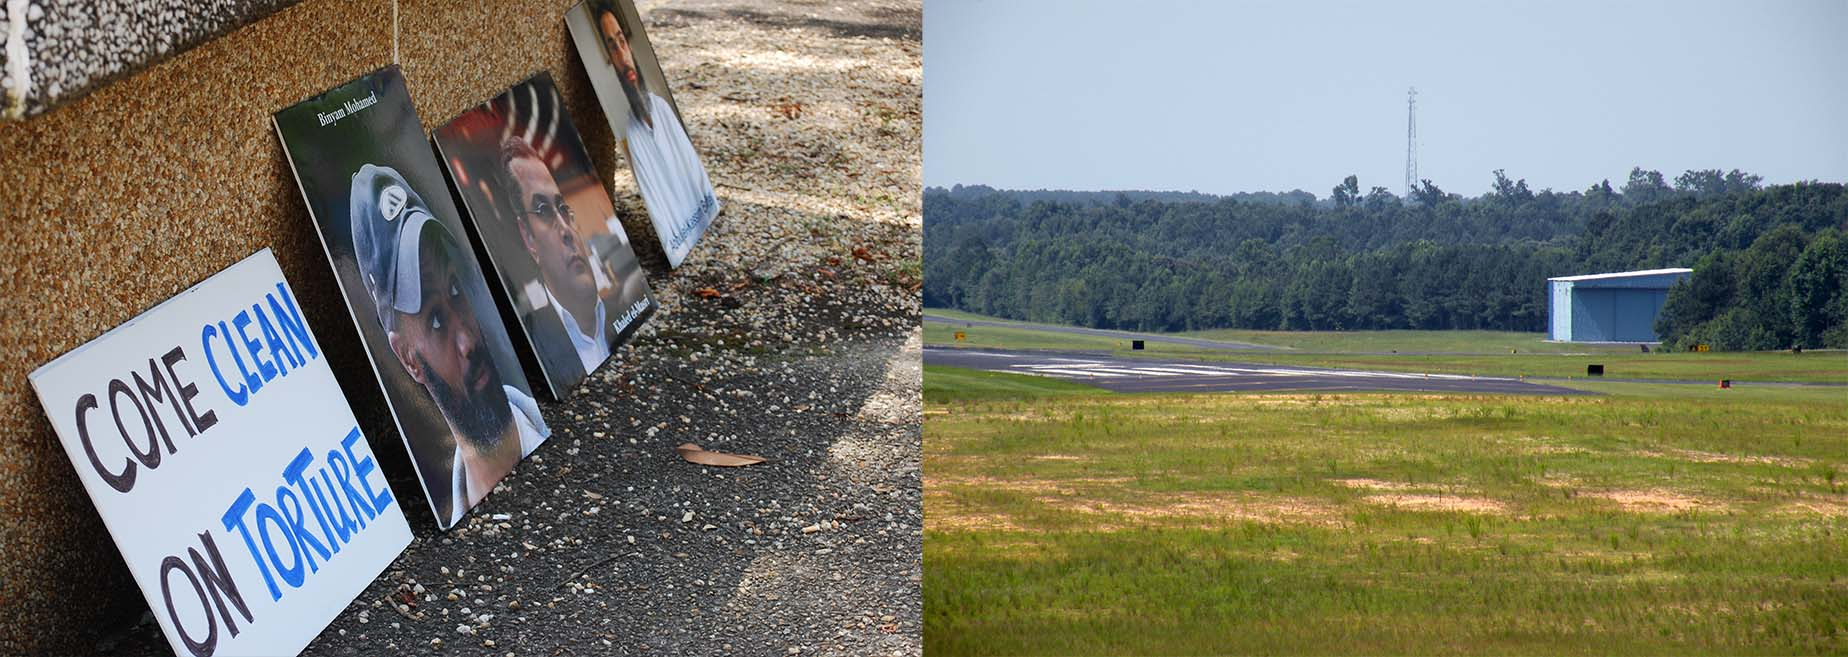 left: photos of survivors of extraordinary rendition line the sidewalk after a public vigil in the state capital in 2015. Right: one of the hangars used by aero contractors, located at the johnston county airport in smithfield, nc.